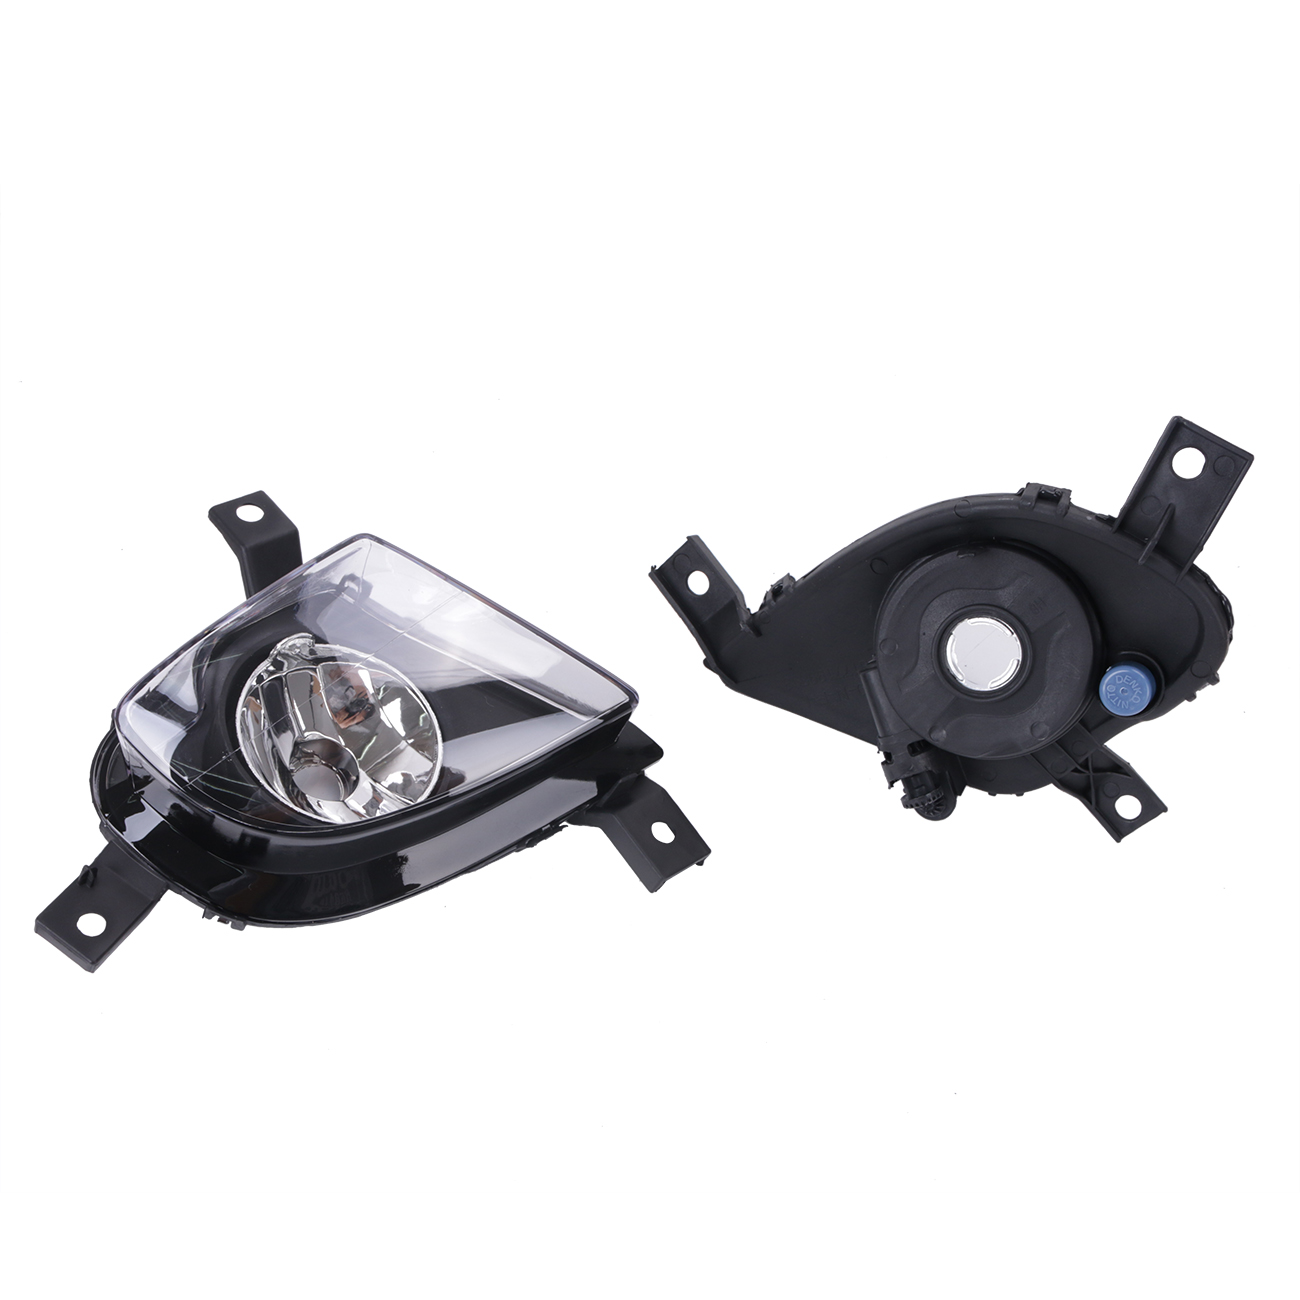 Front Fog Lights OEM 63177199893 63177199894  For BMW 3 Series 328i 323i 335d 335i E90 E91 2009 2010 2011 // for bmw 3 series e36 318 328 323 325 front coilover strut camber plate top mount green drift front domlager top upper mount